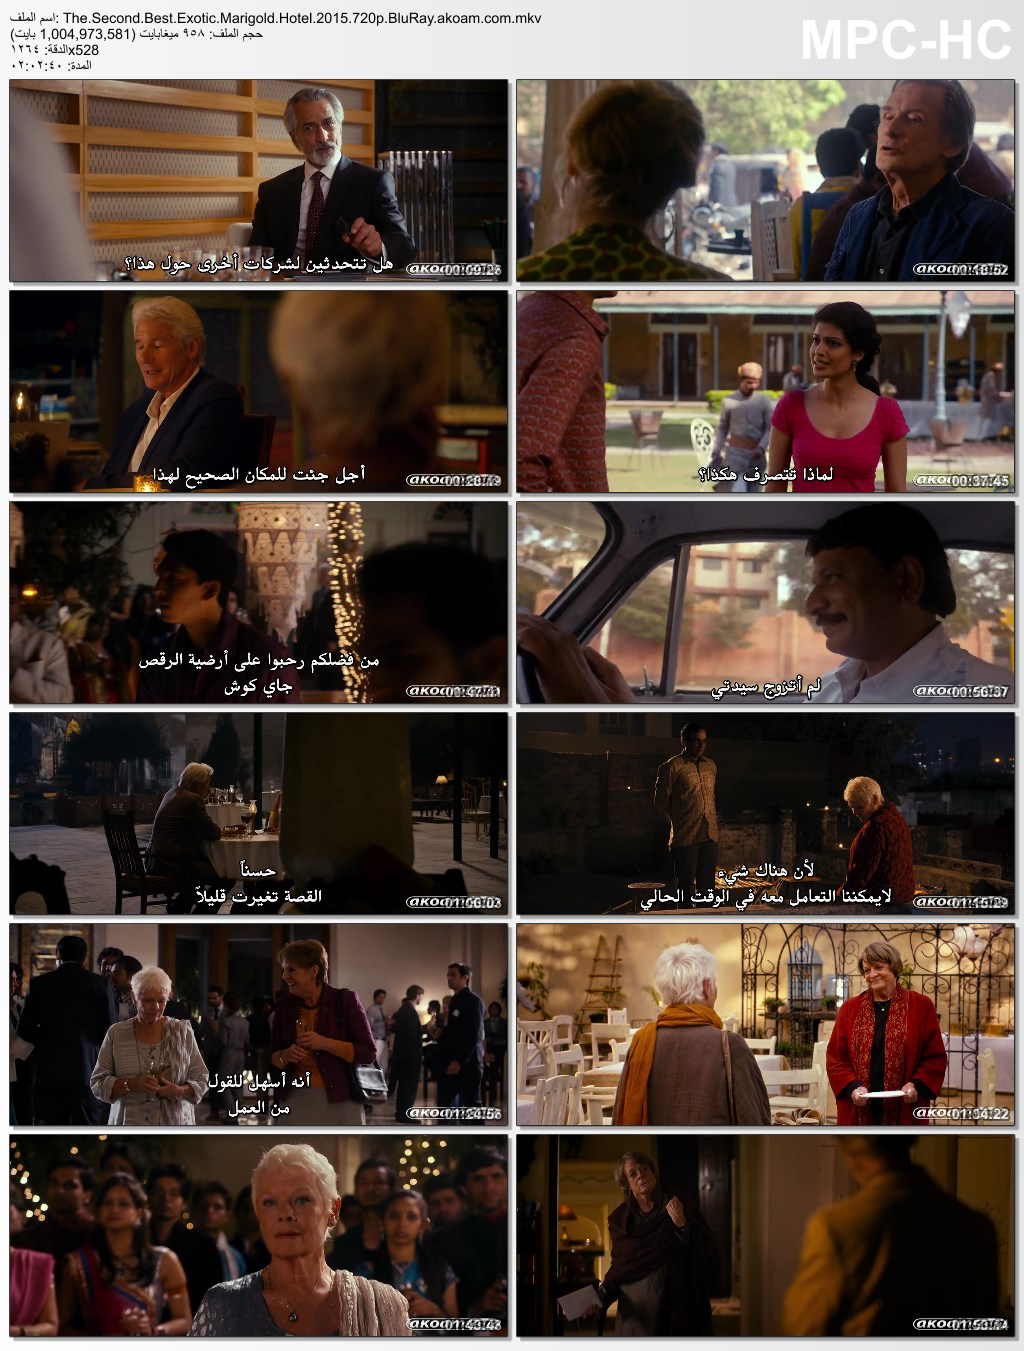 The Second Best Exotic Marigold Hotel,Second,Best,Marigold,Exotic,الكوميديا,الدراما